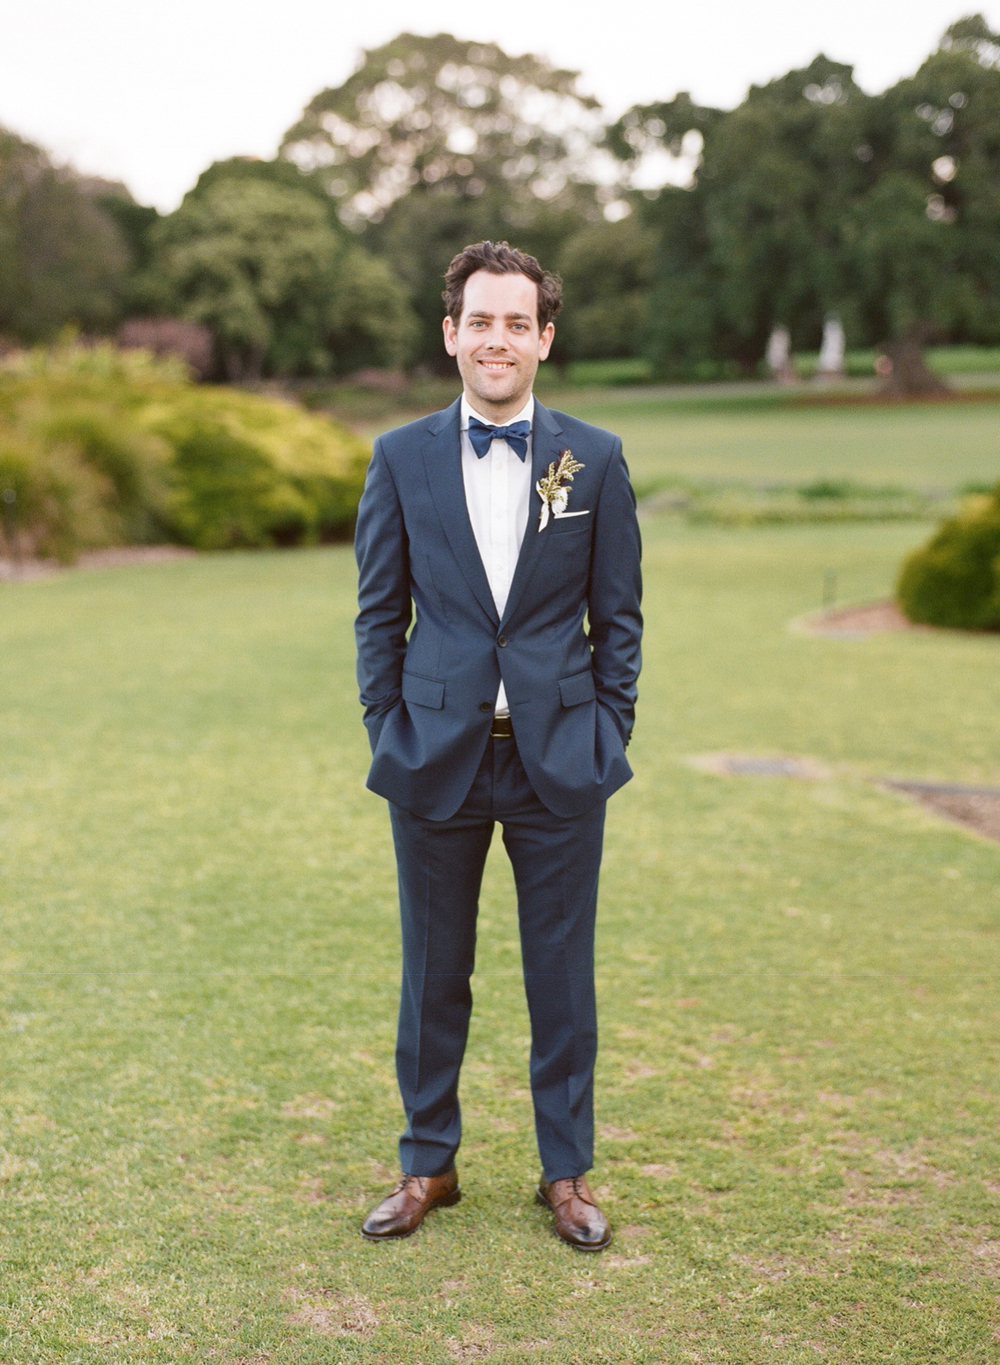 Mr-Edwards-refined-film-photography.-Sydney-Wedding-Photography_2296.jpg